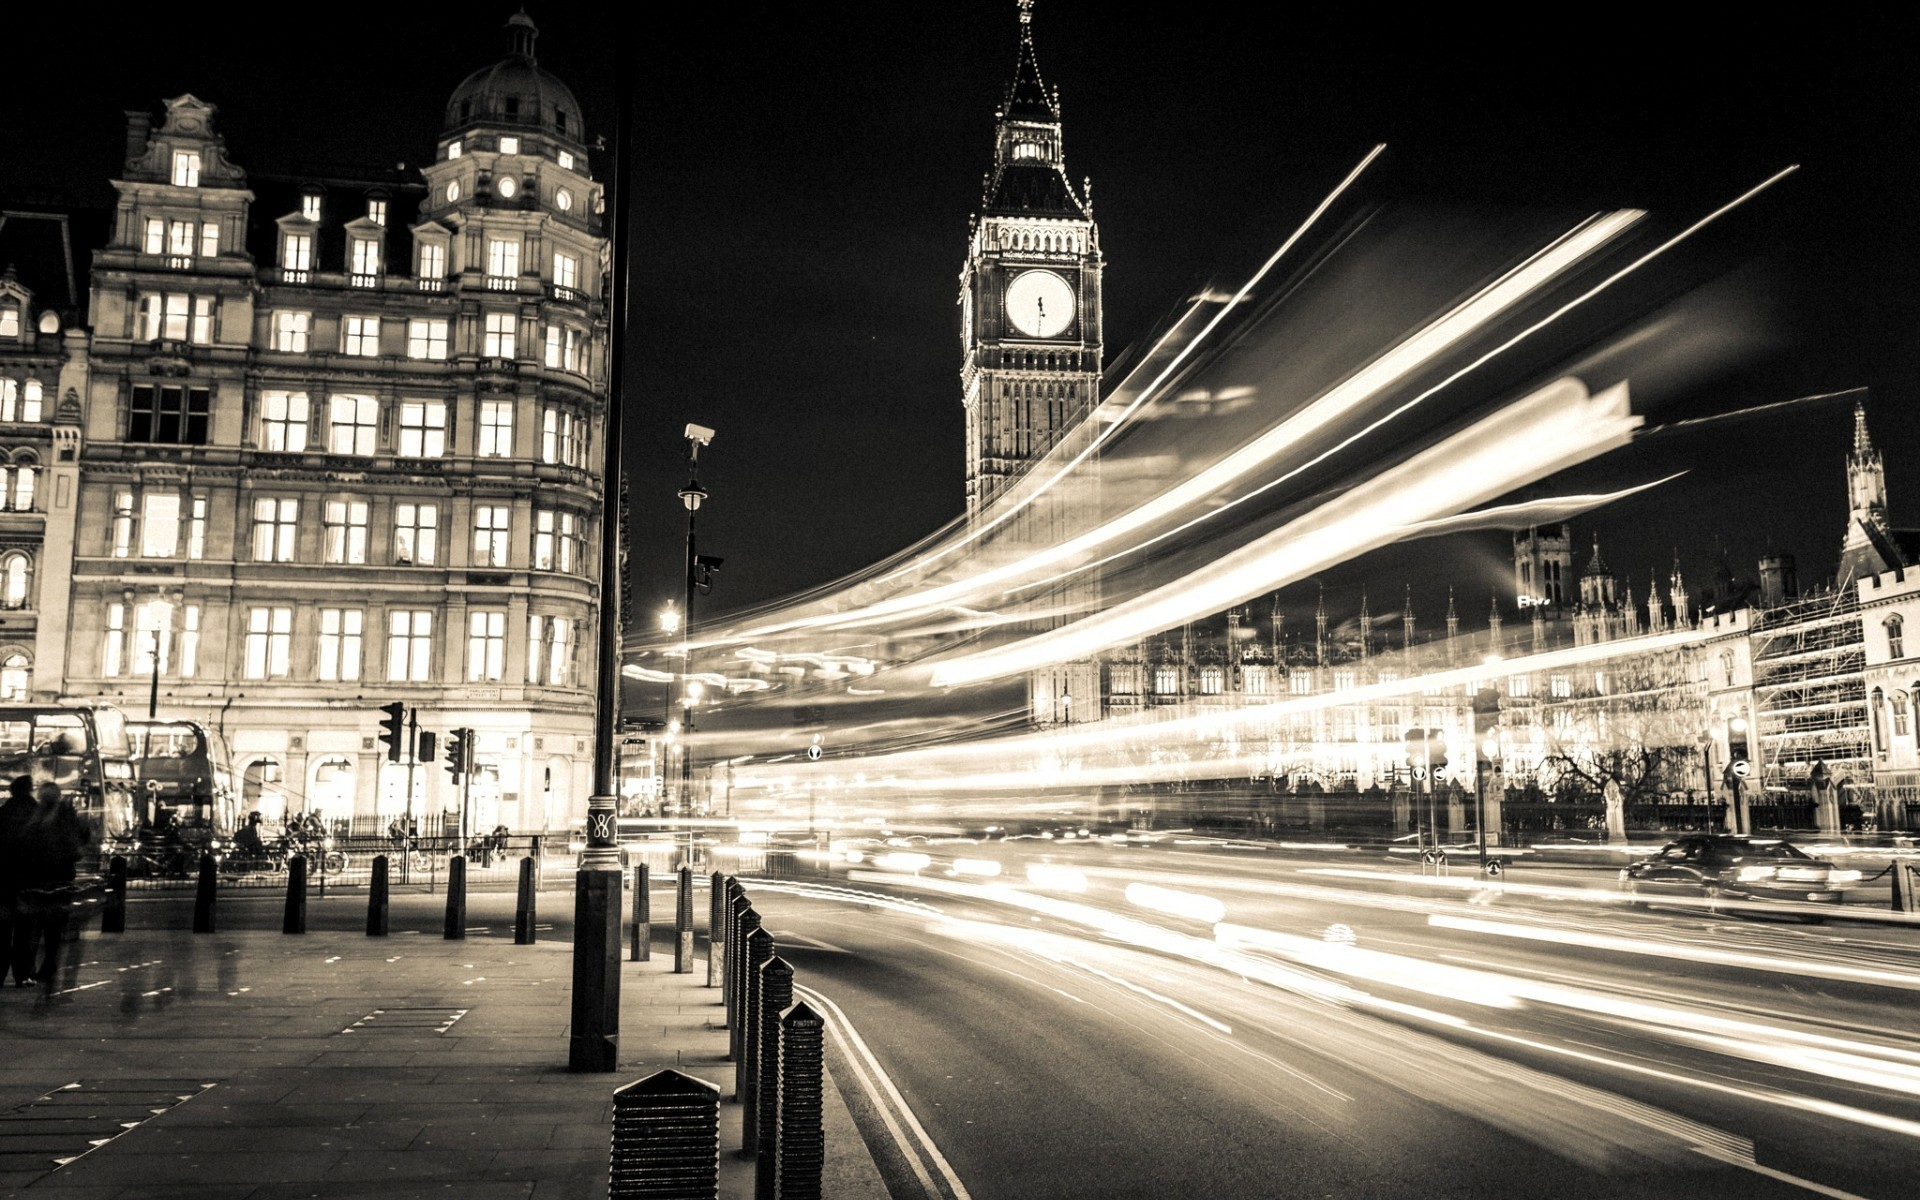 [47+] Black and White London Wallpaper on WallpaperSafari |London Skyline Wallpaper Black White